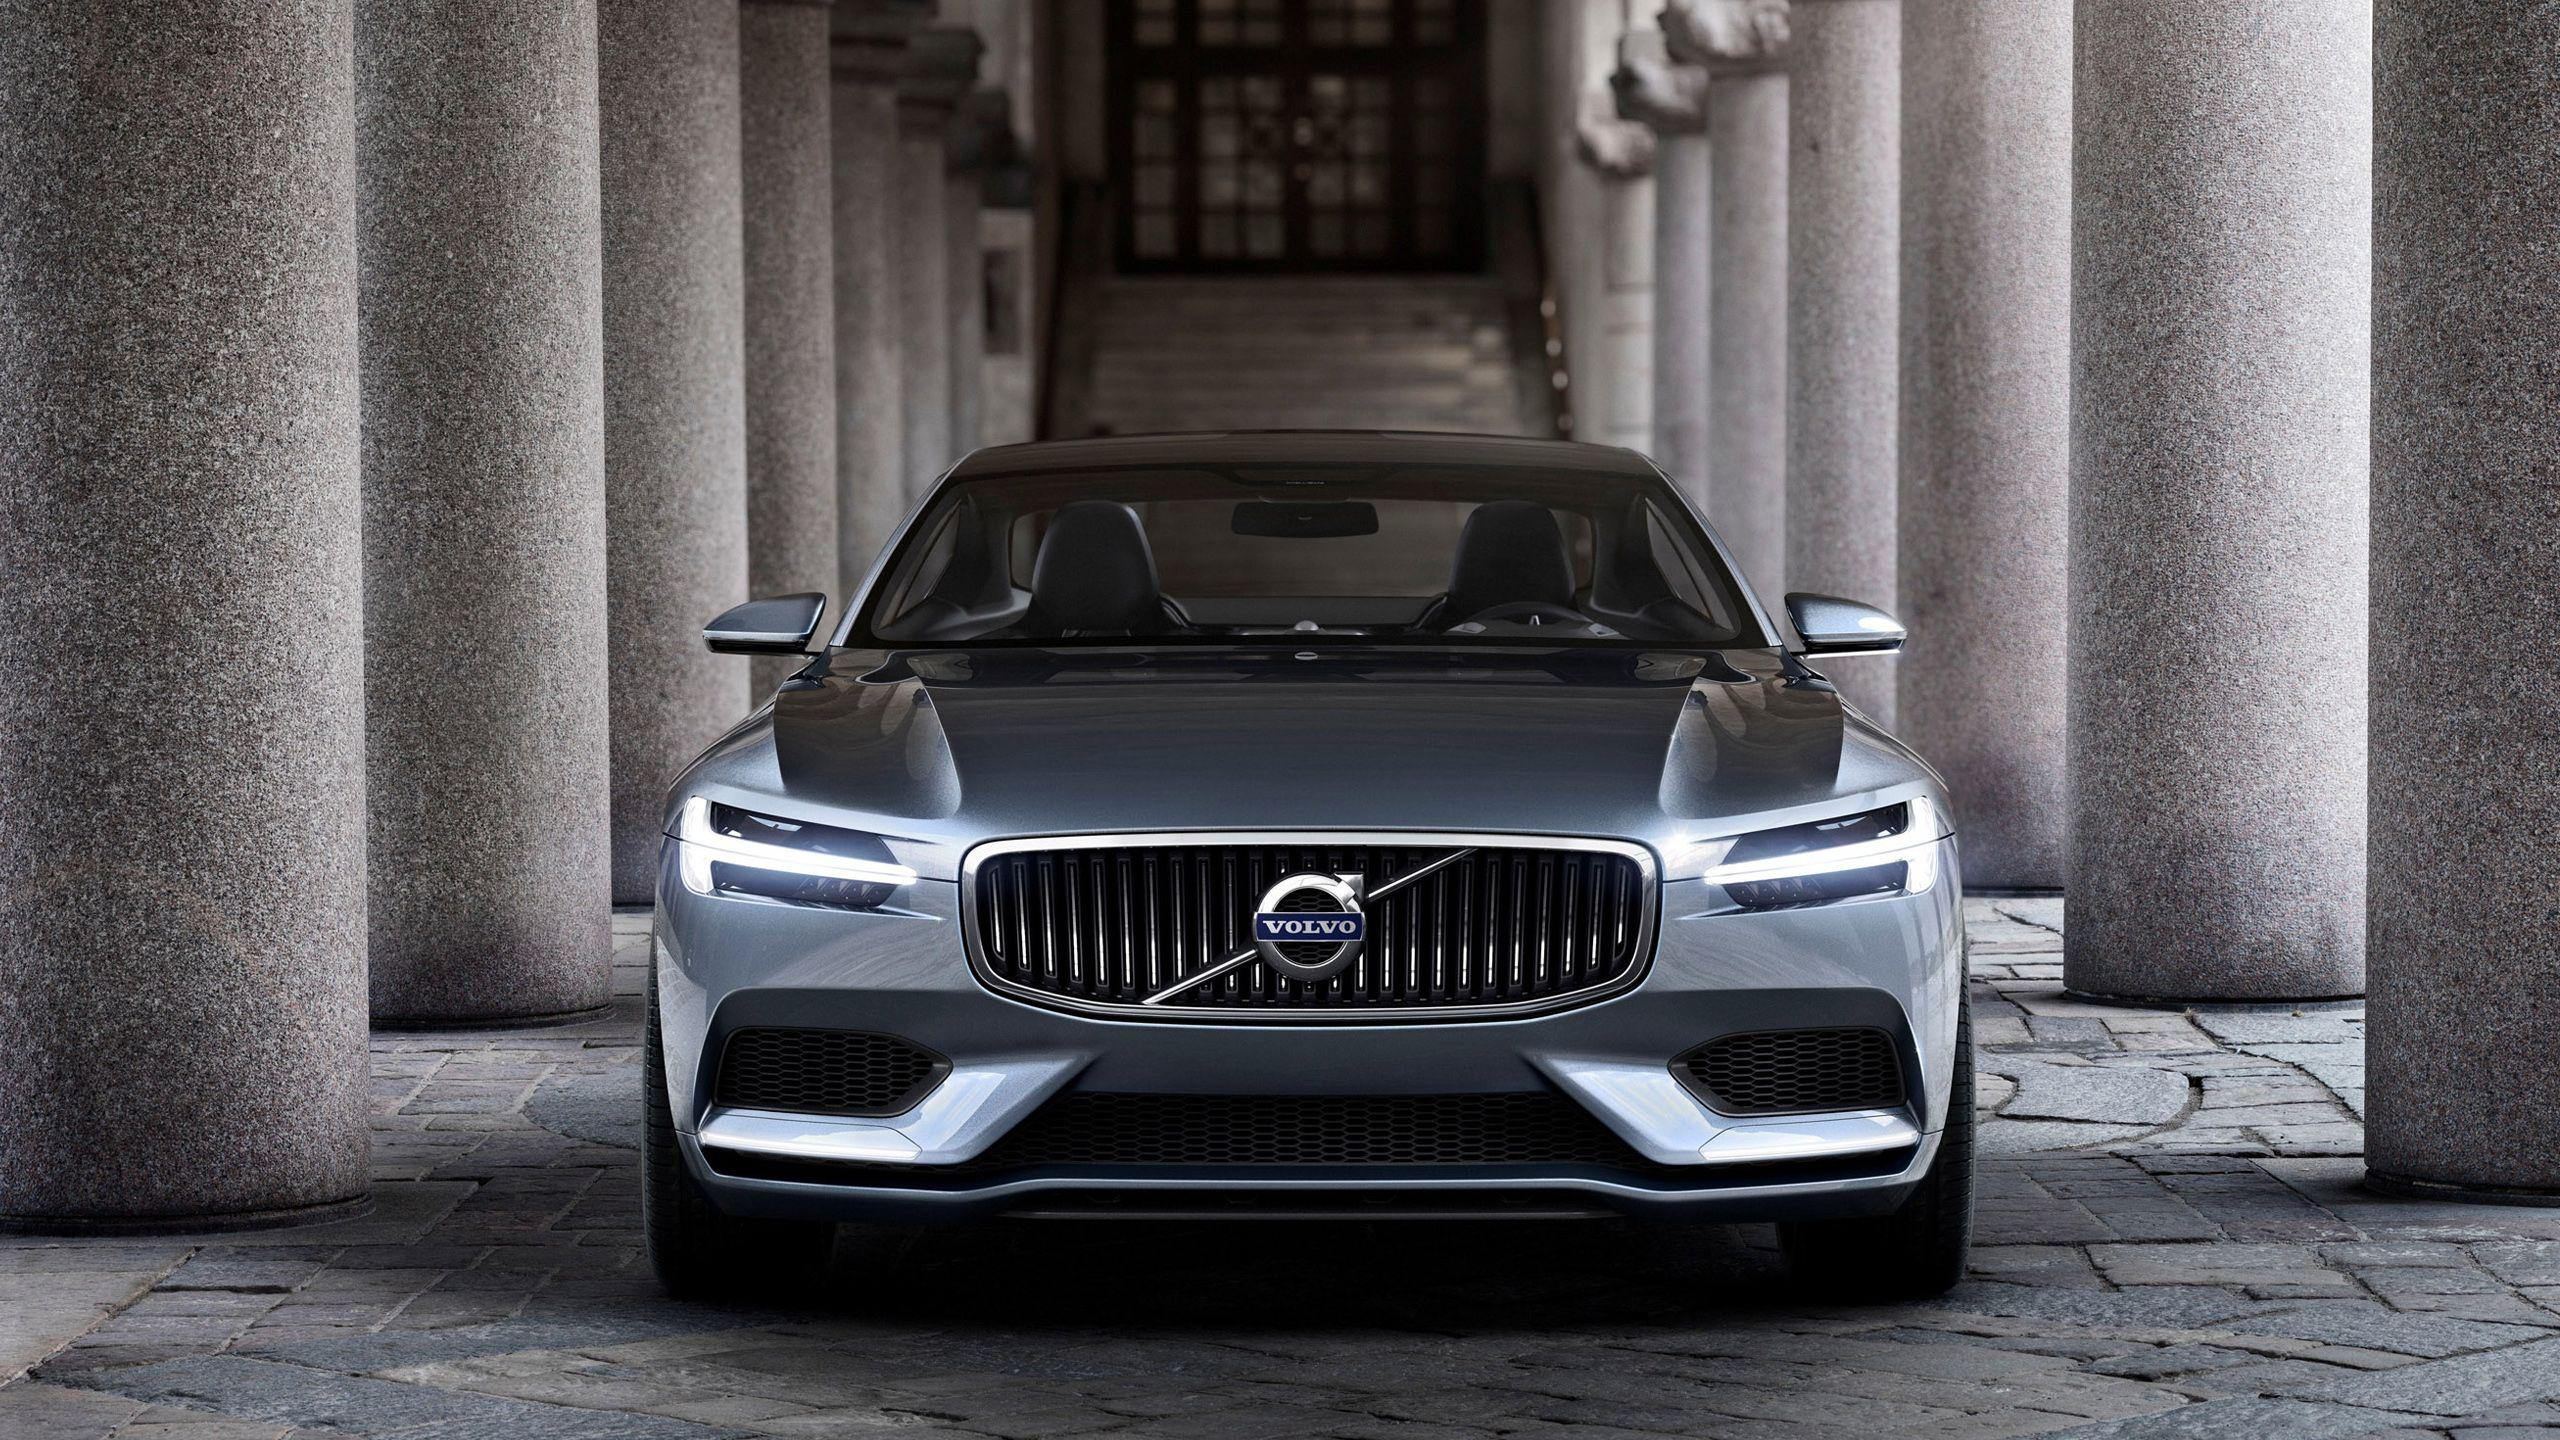 Volvo Wallpapers and Background Images - stmed.net